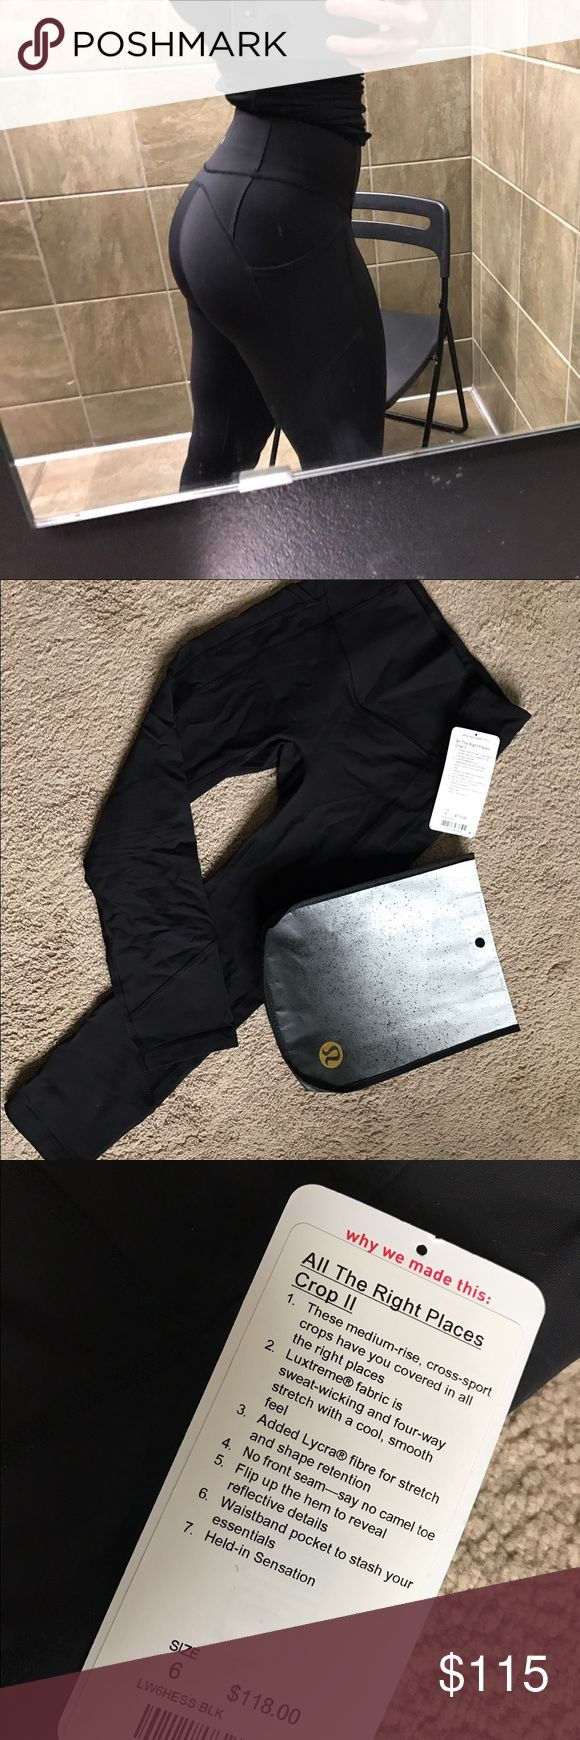 🍋Lululemon All The Right Places Crop II🍋 Love, love, love these pants! They're so flattering and really hold you in. Very impressed with this style! Pretty much brand new - worn twice. There is a small snag on one seam, but any Lululemon store will fix it for free. lululemon athletica Pants Leggings